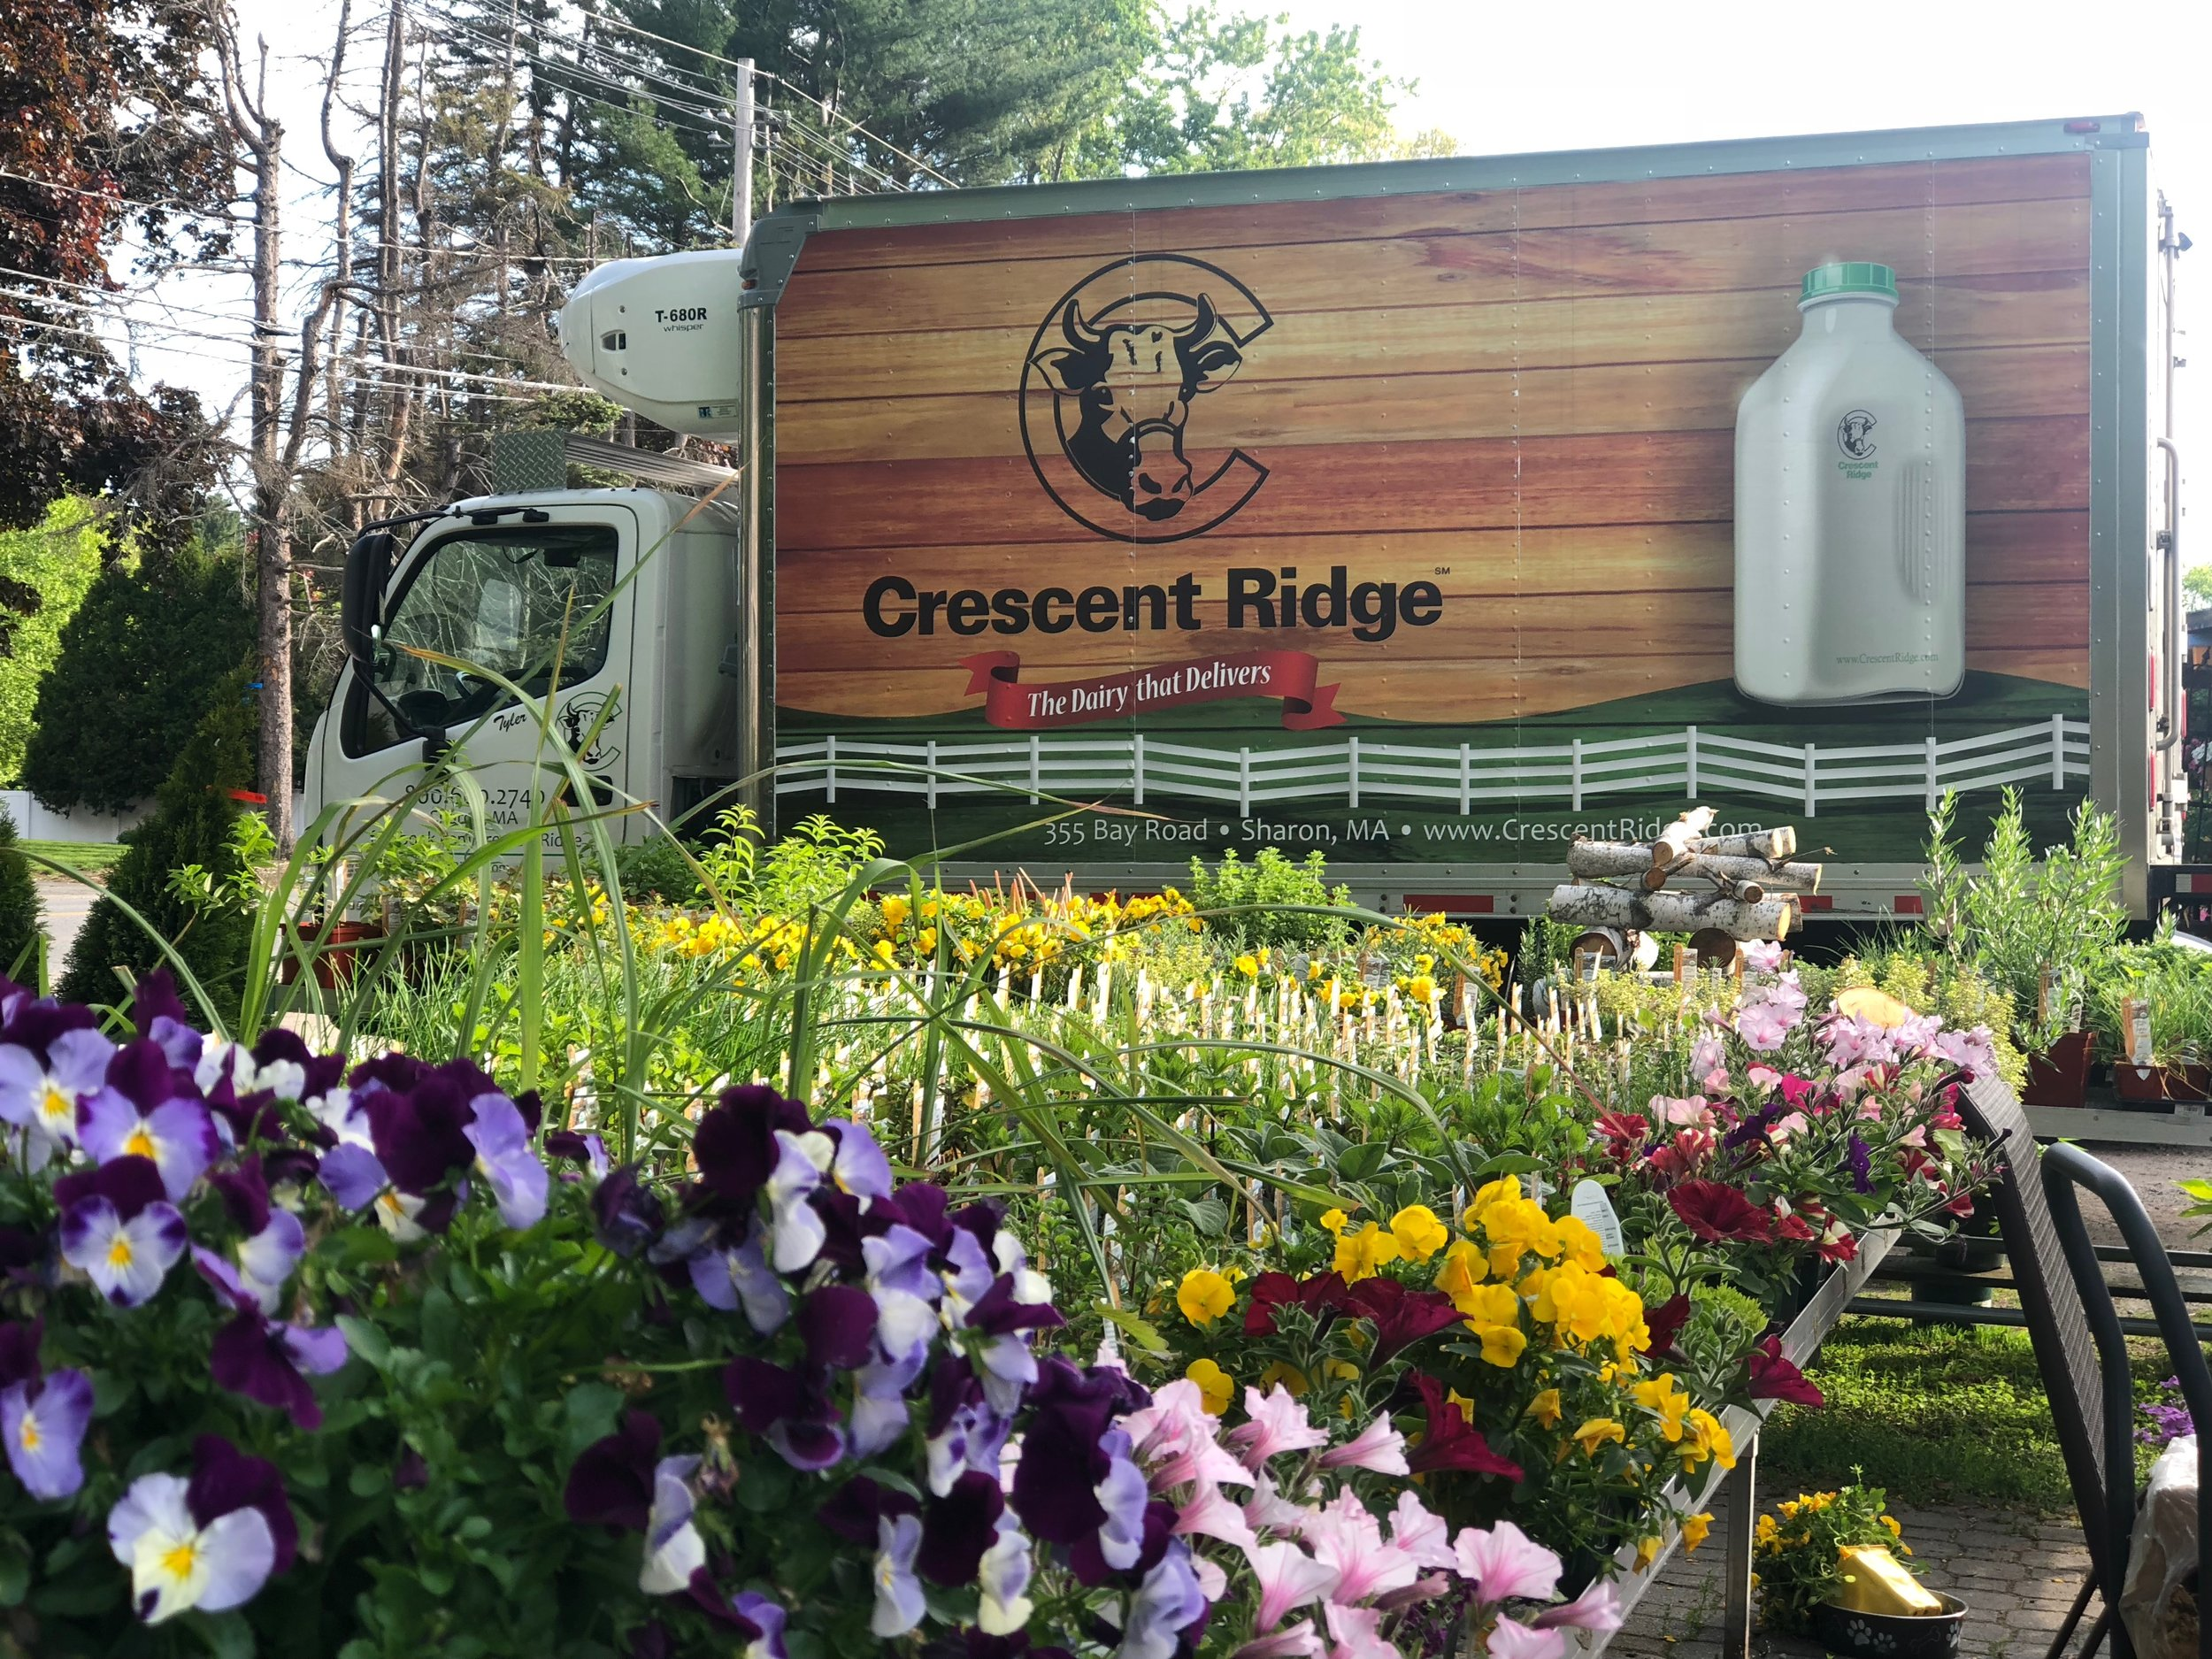 crescent Ridge is delivering farm fresh milk - to the farmstand every Thursday